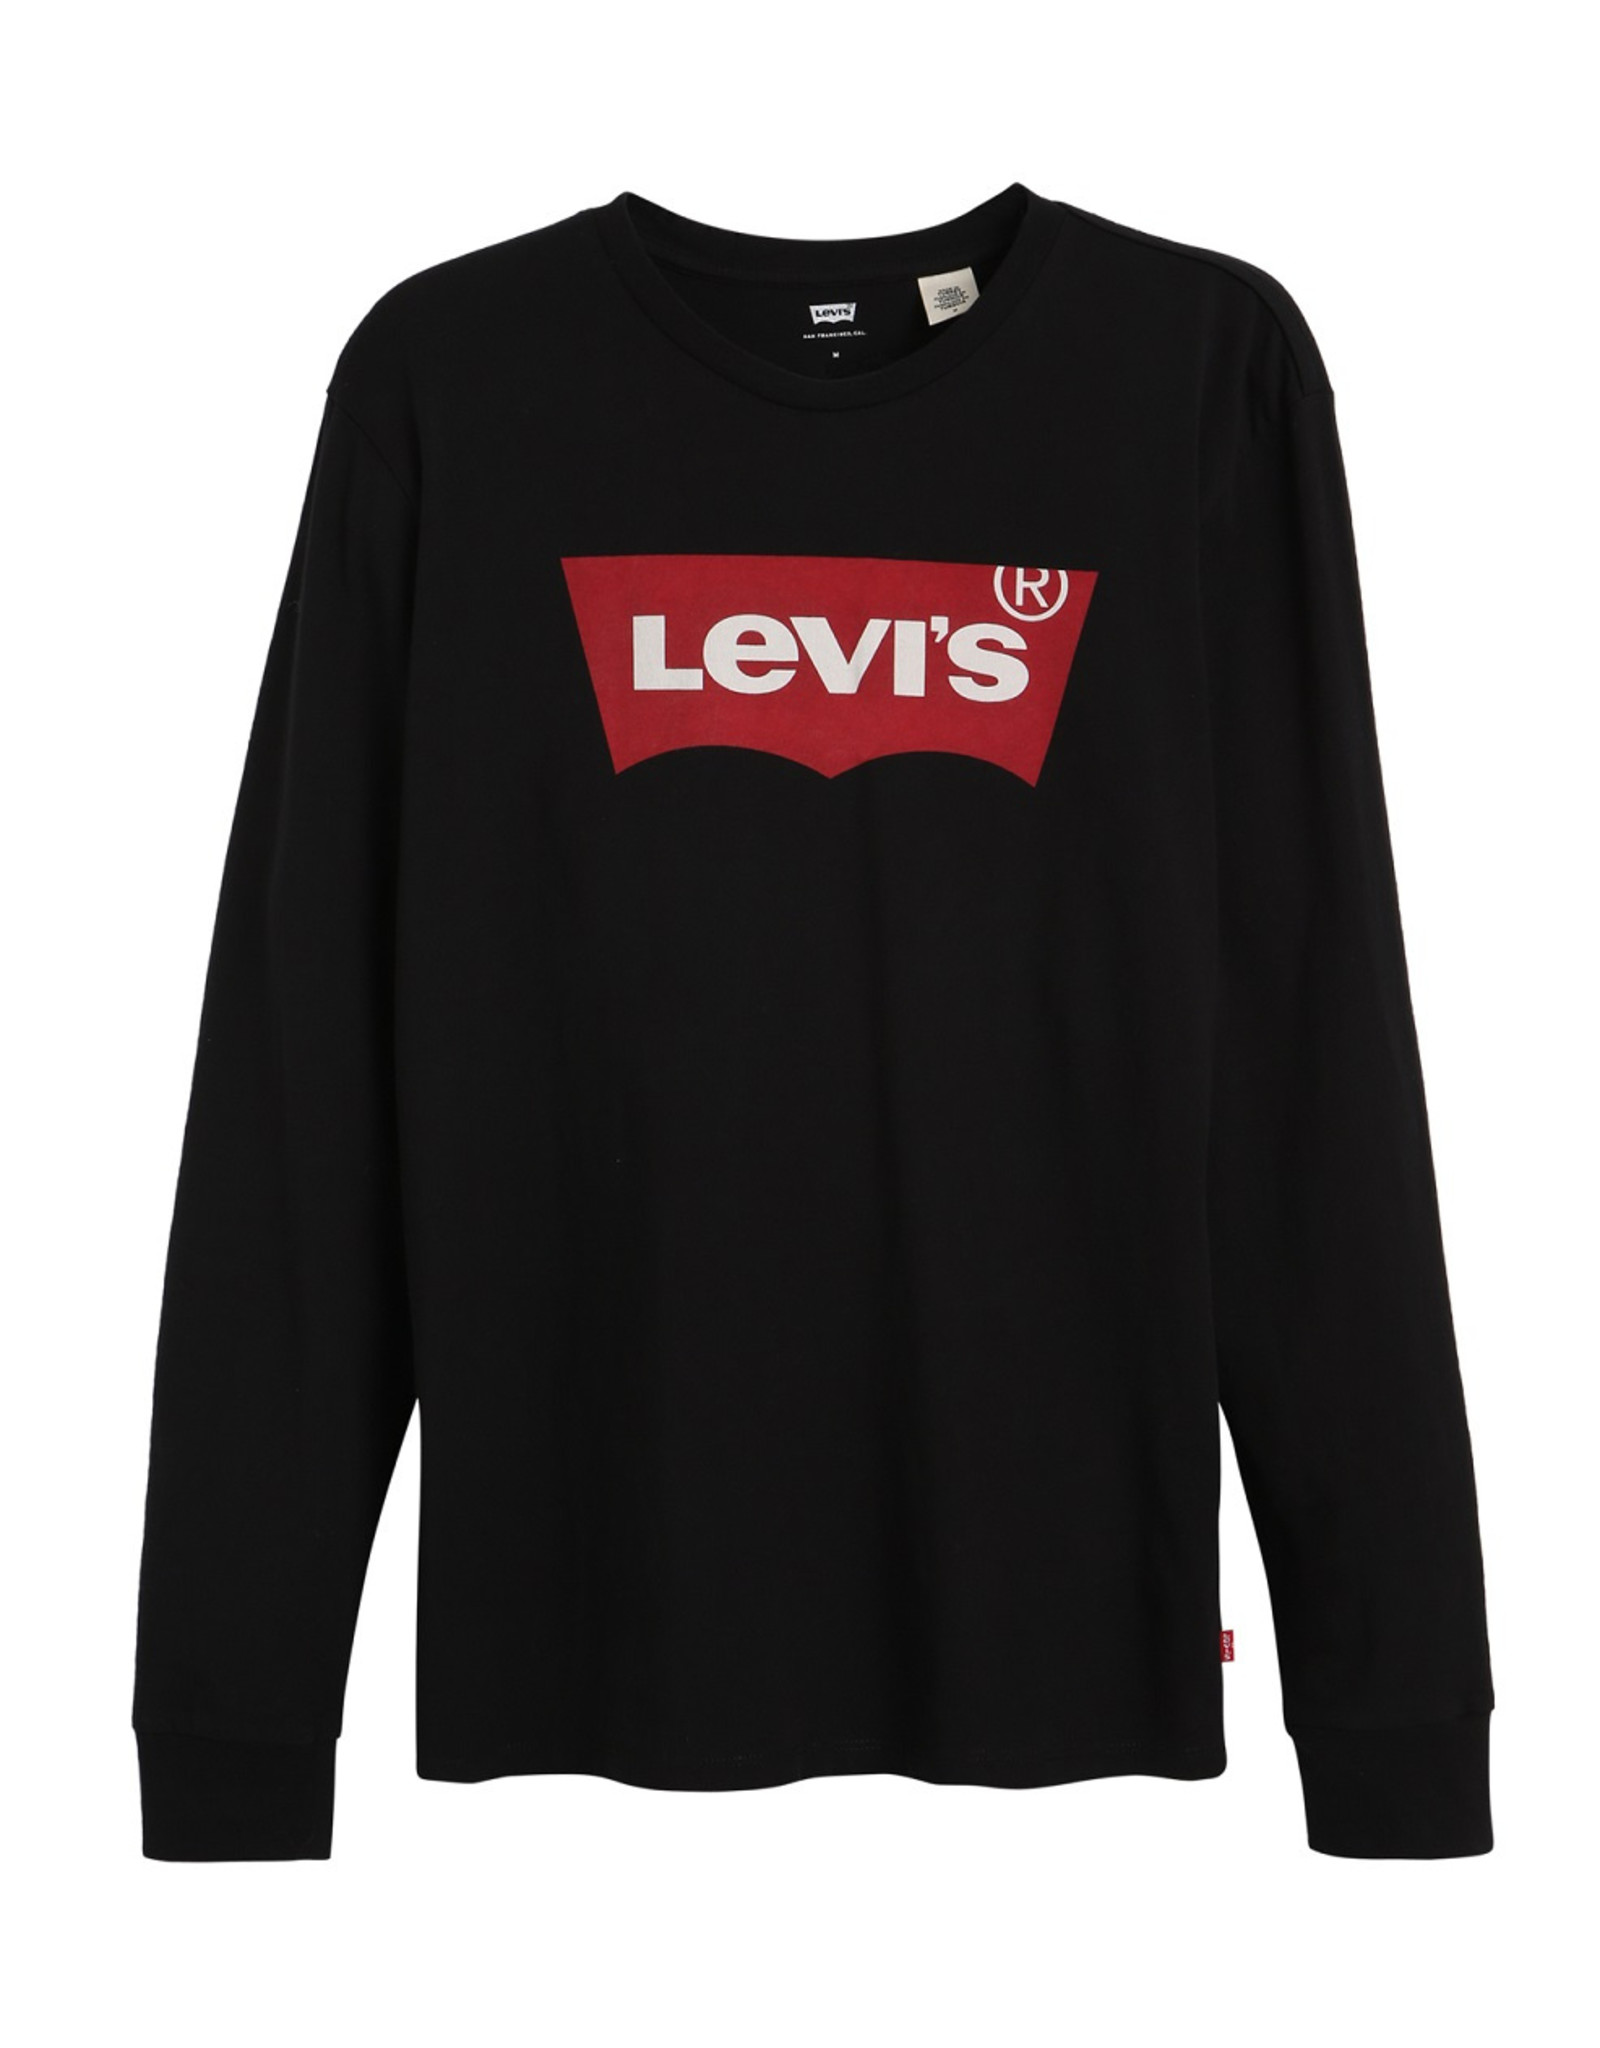 Levi's standard Fit Long Sleeves Graphic Tee